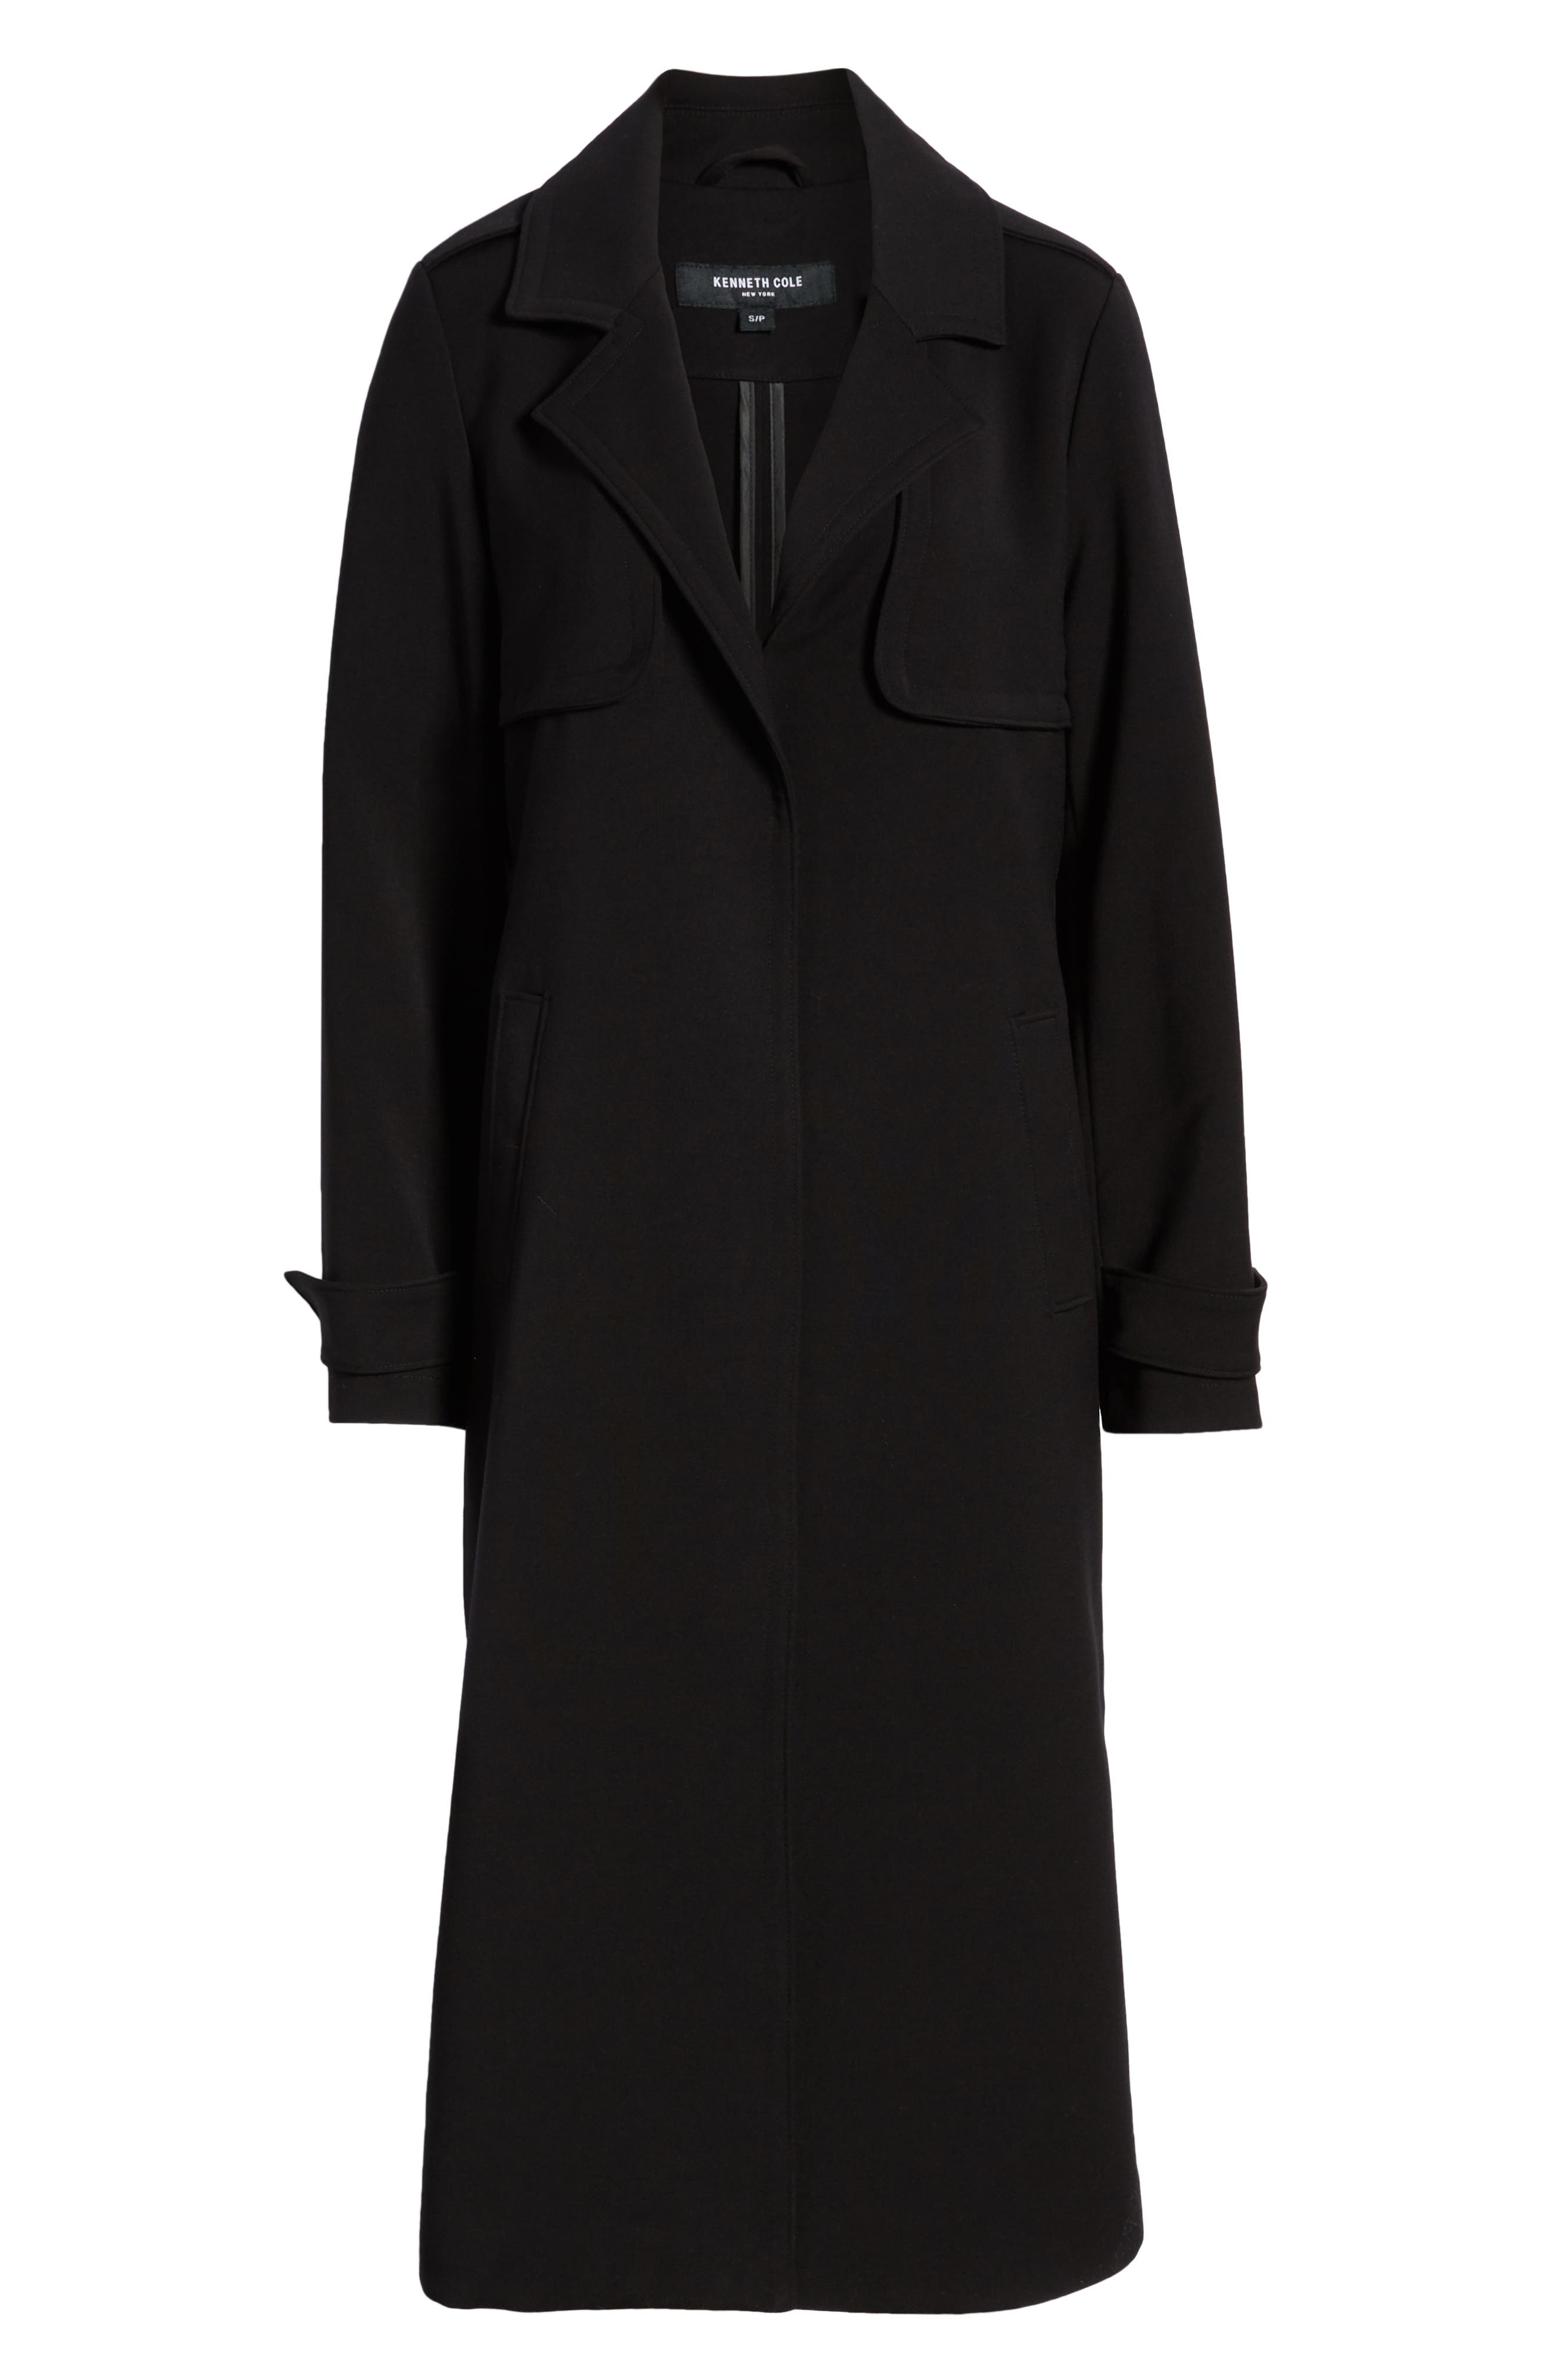 KENNETH COLE NEW YORK, Ponte Trench Coat, Alternate thumbnail 6, color, BLACK